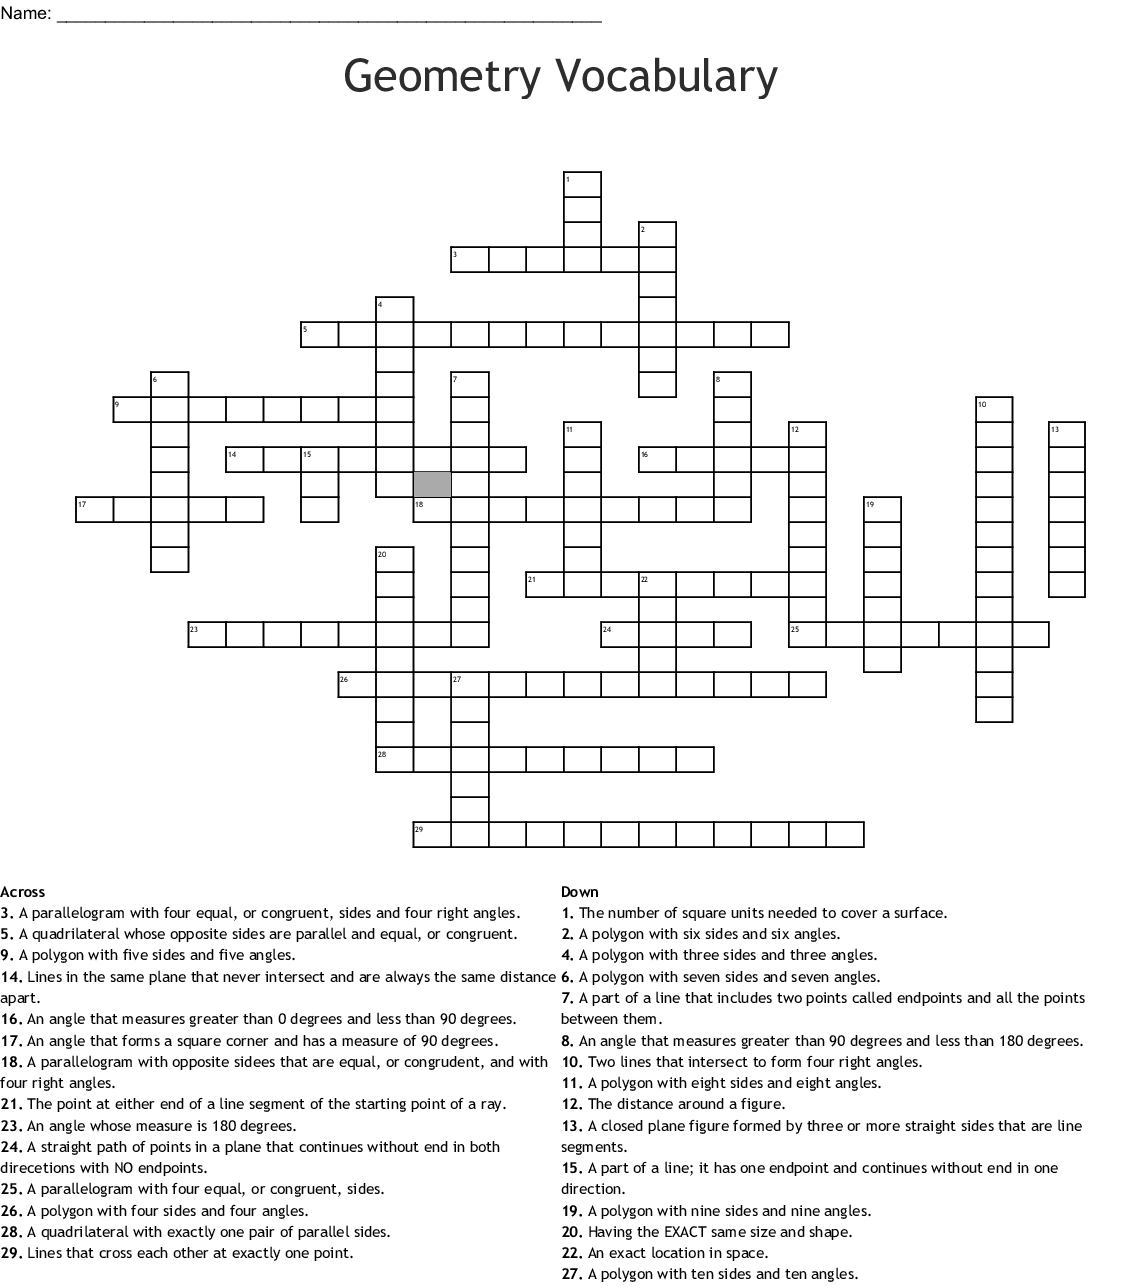 Geometry Vocabulary Crossword